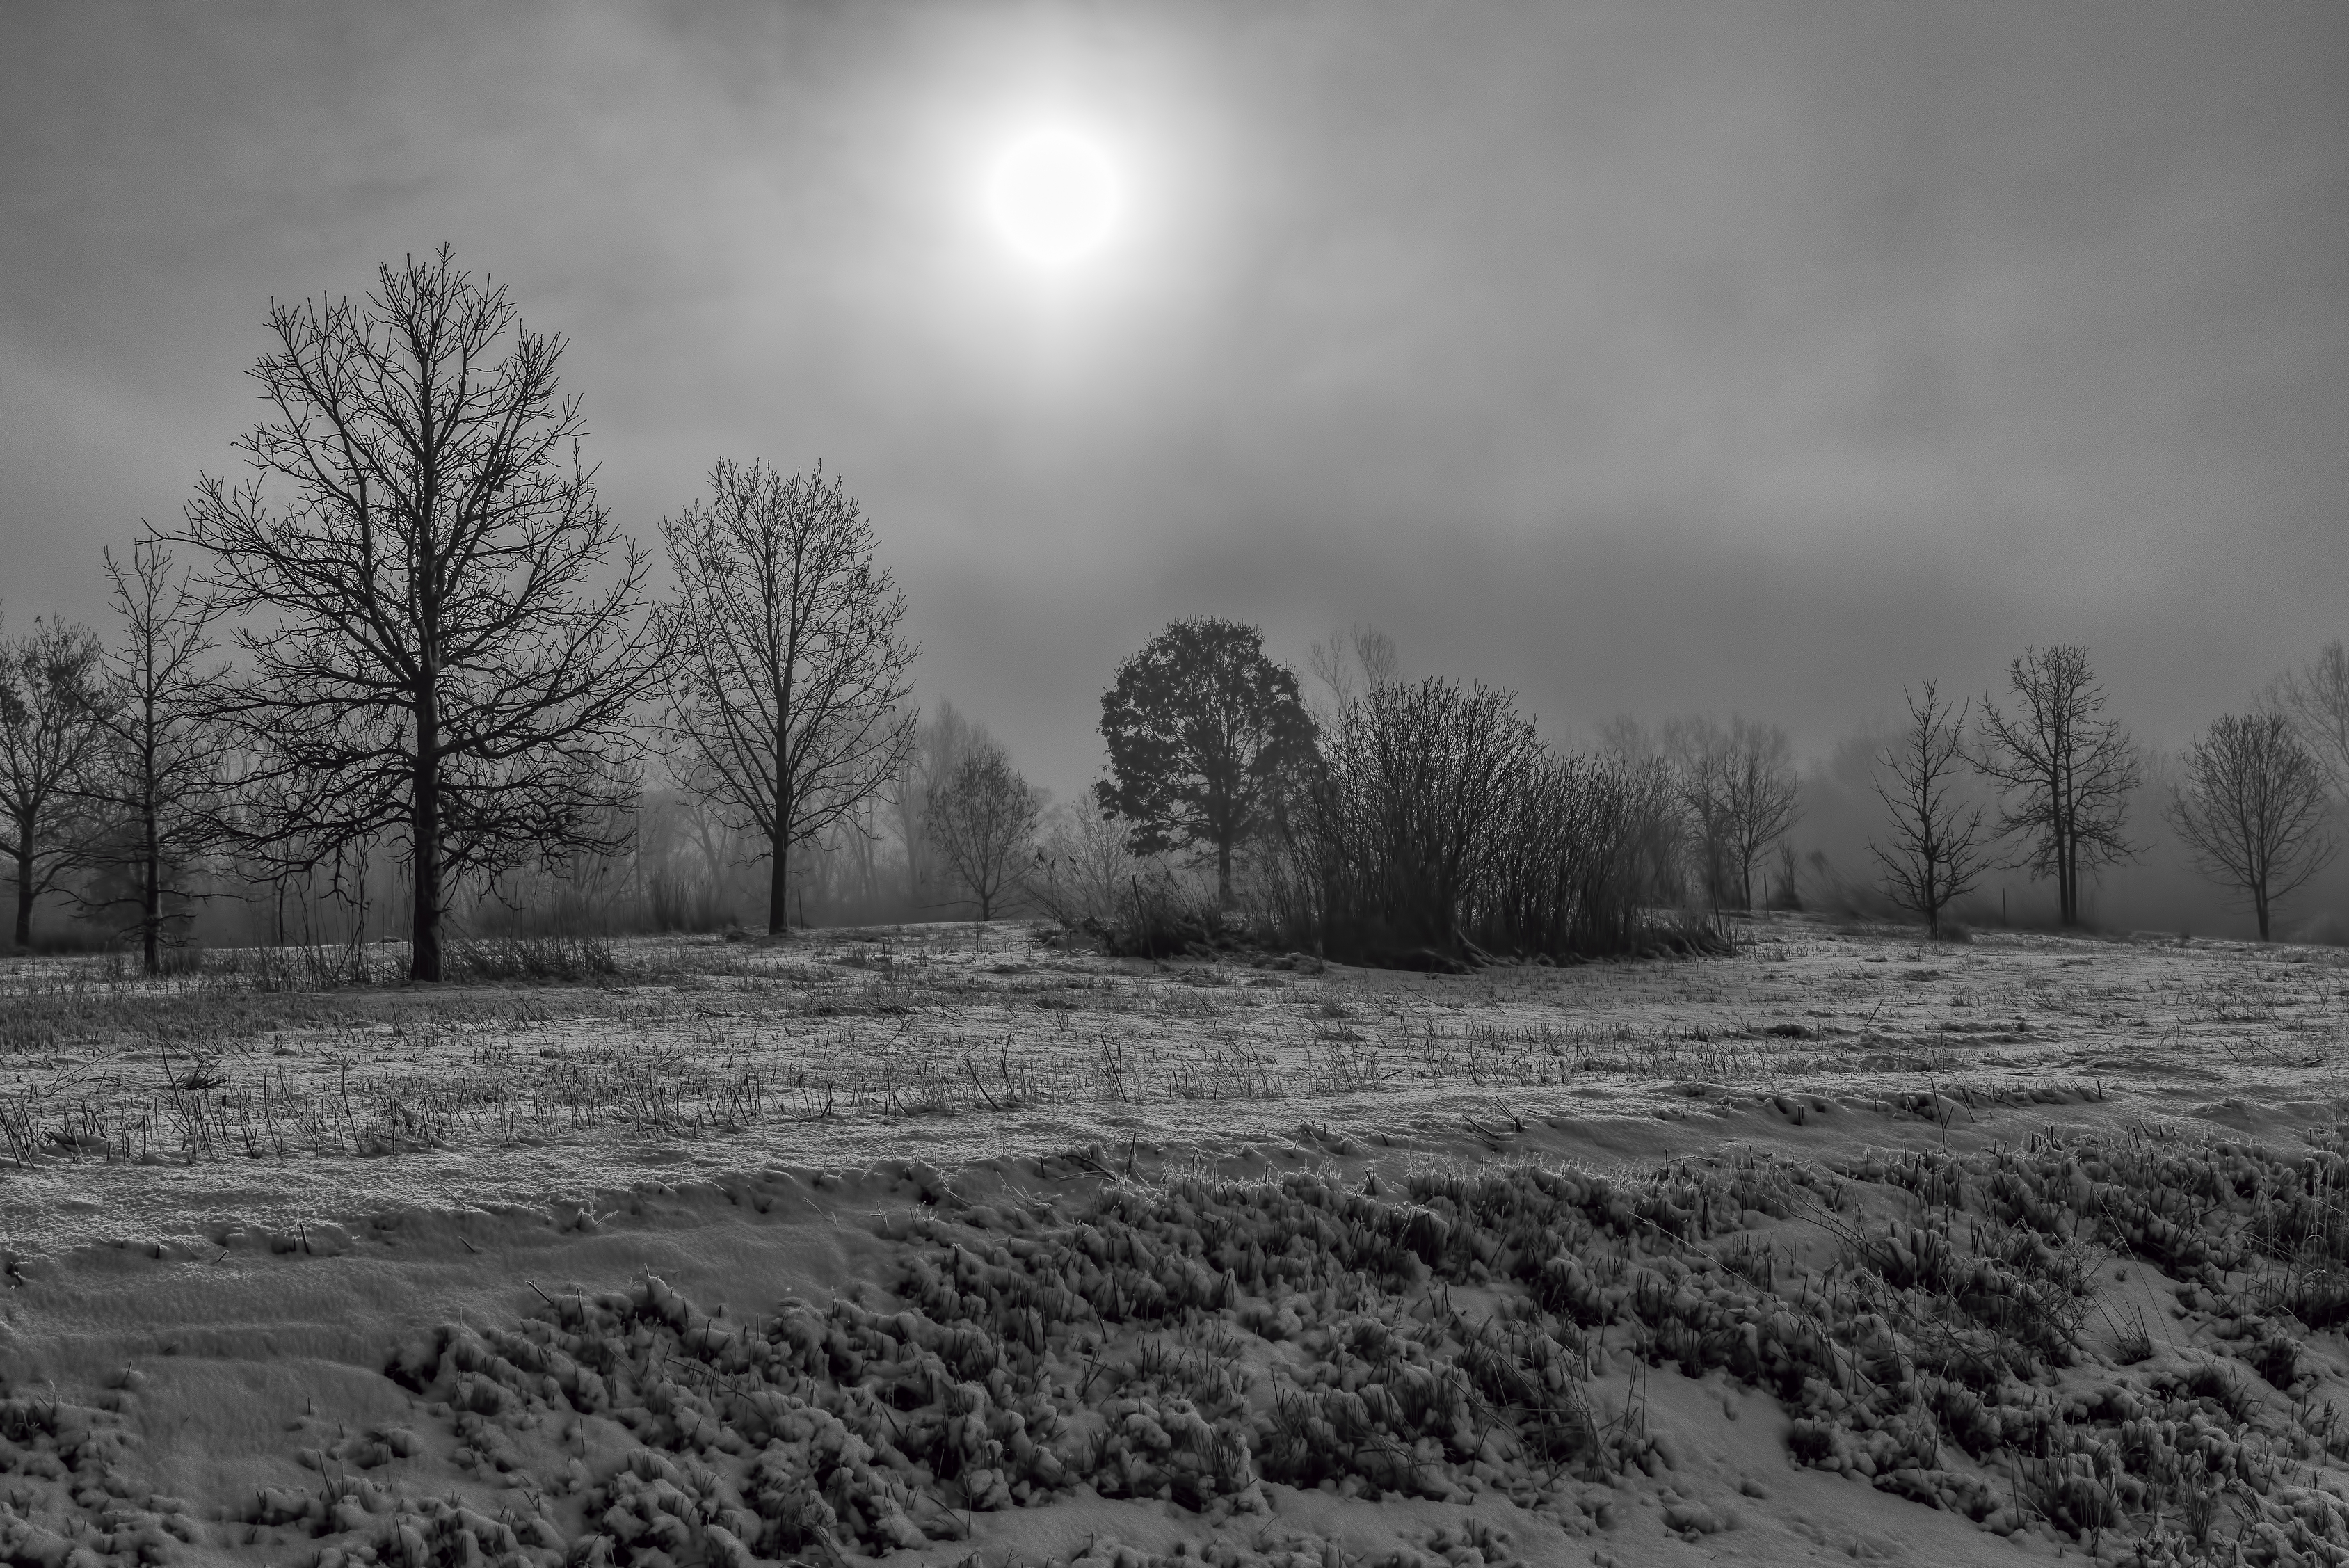 (2/2) The sun shines through the thick fog. Photo: Tim Chapman, landscape, nature, winter, snow, fog, sun, sky, tree